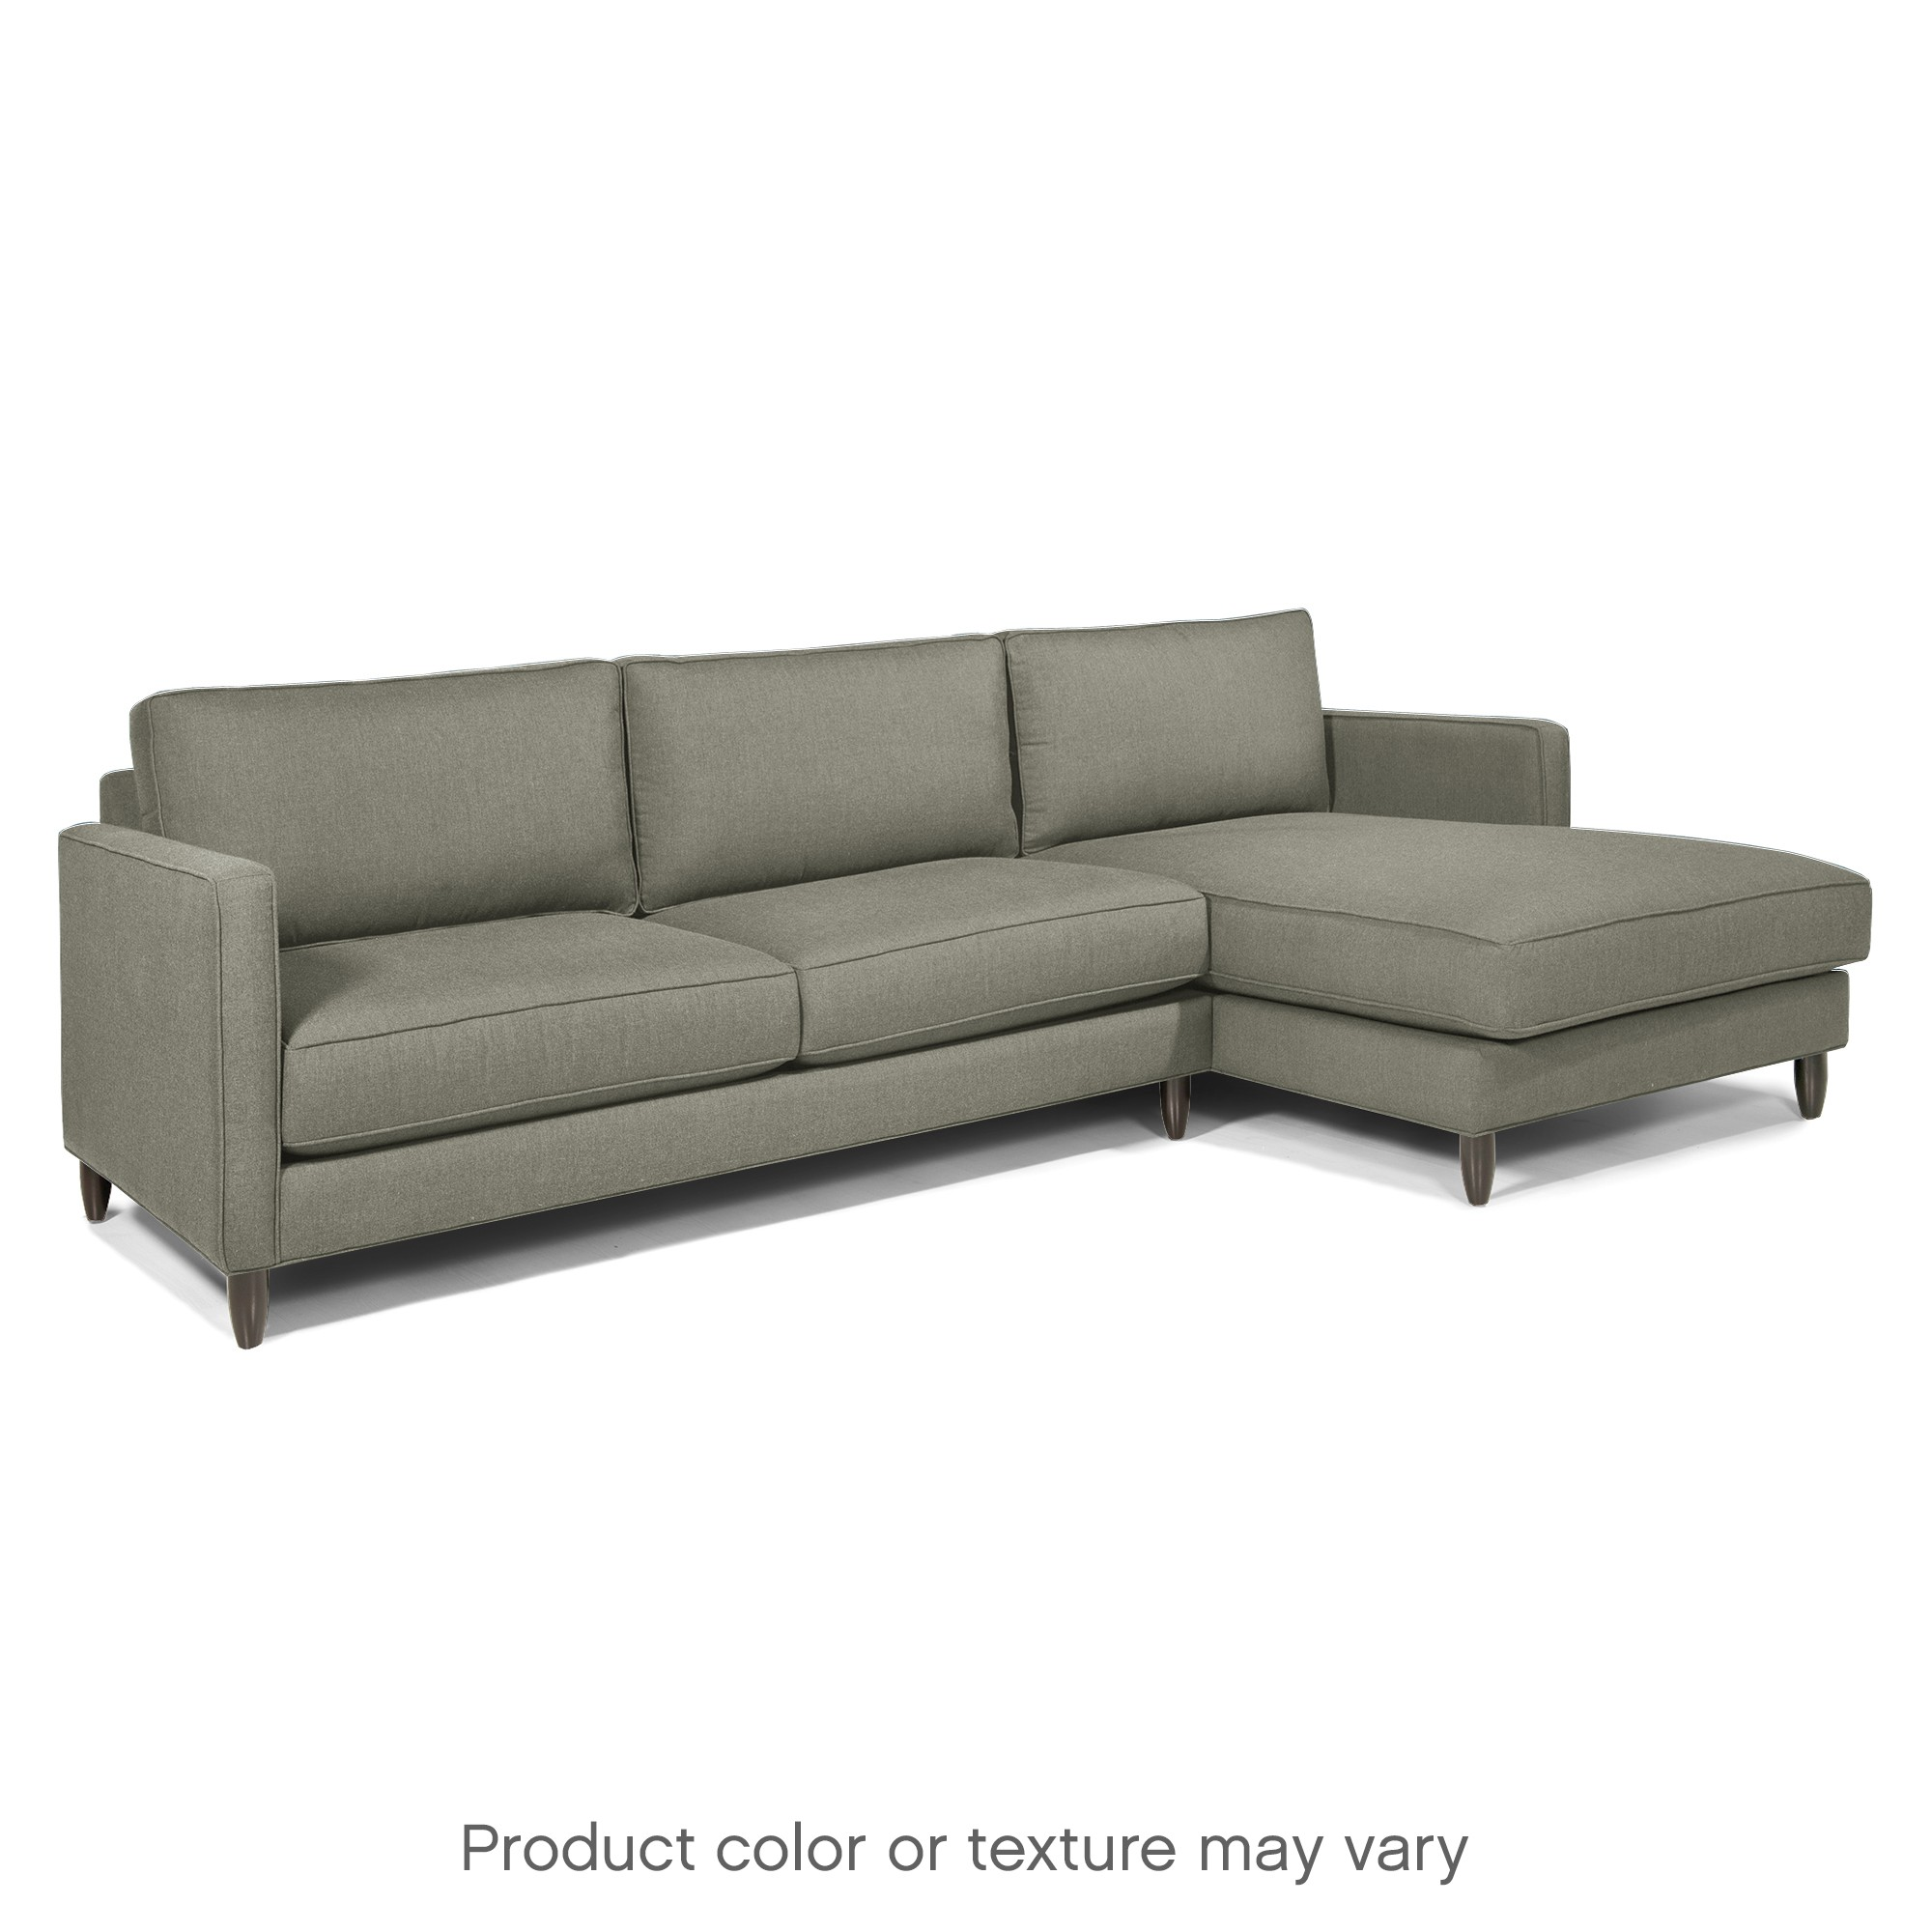 Jude Sectional Sofa Smart Furniture - Younger sofa